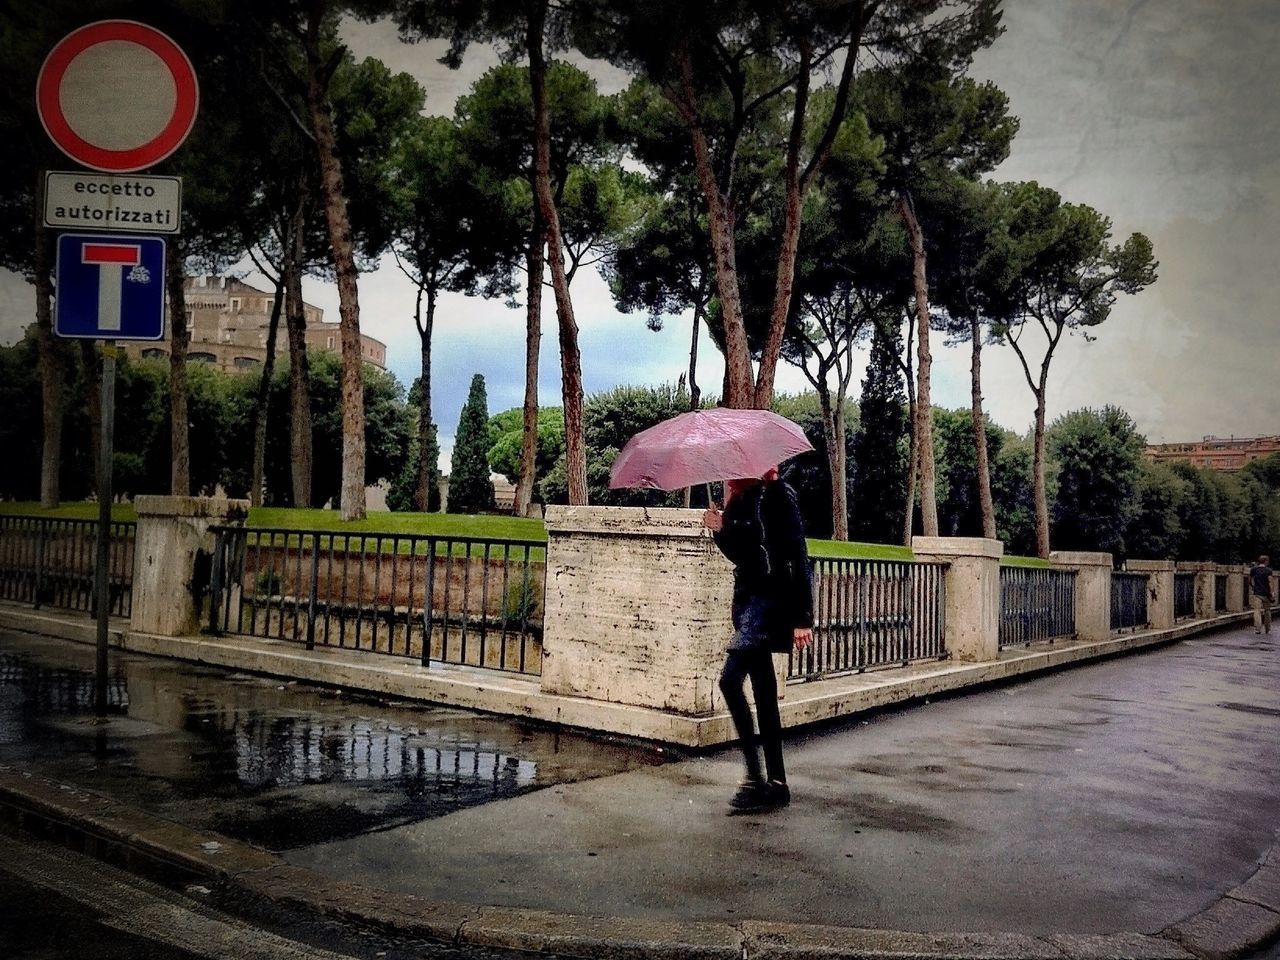 Castel Sant'Angelo City Life Day Direction Full Length Incidental People Italy Lifestyles Outdoors Perspective Pink Umbrella Place Protection Rain Real People Rome Street The Way Forward Trees Umbrella Walking Women